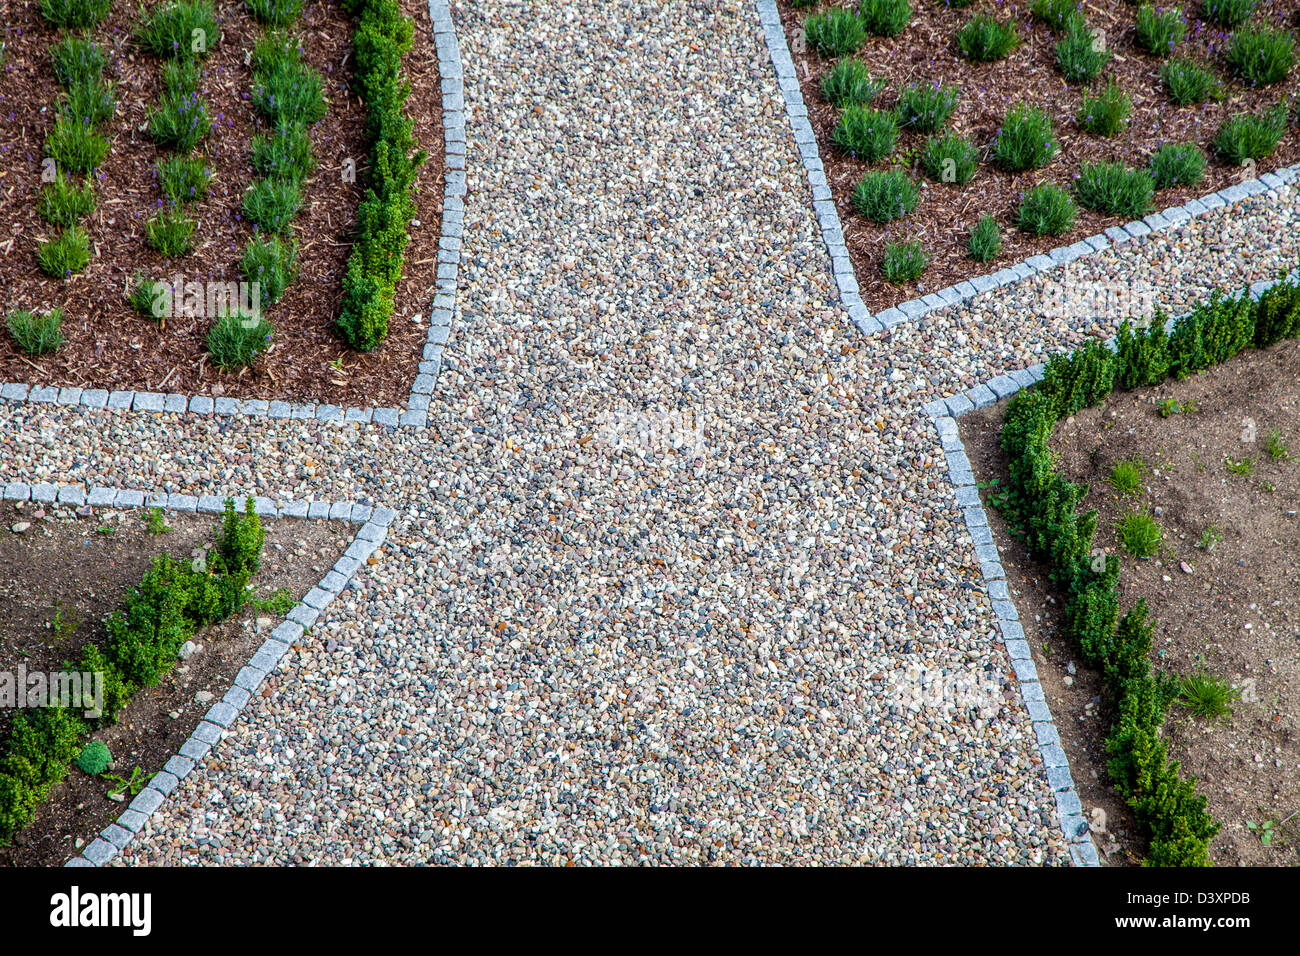 Crossroad, path with pebbles, in a garden. - Stock Image